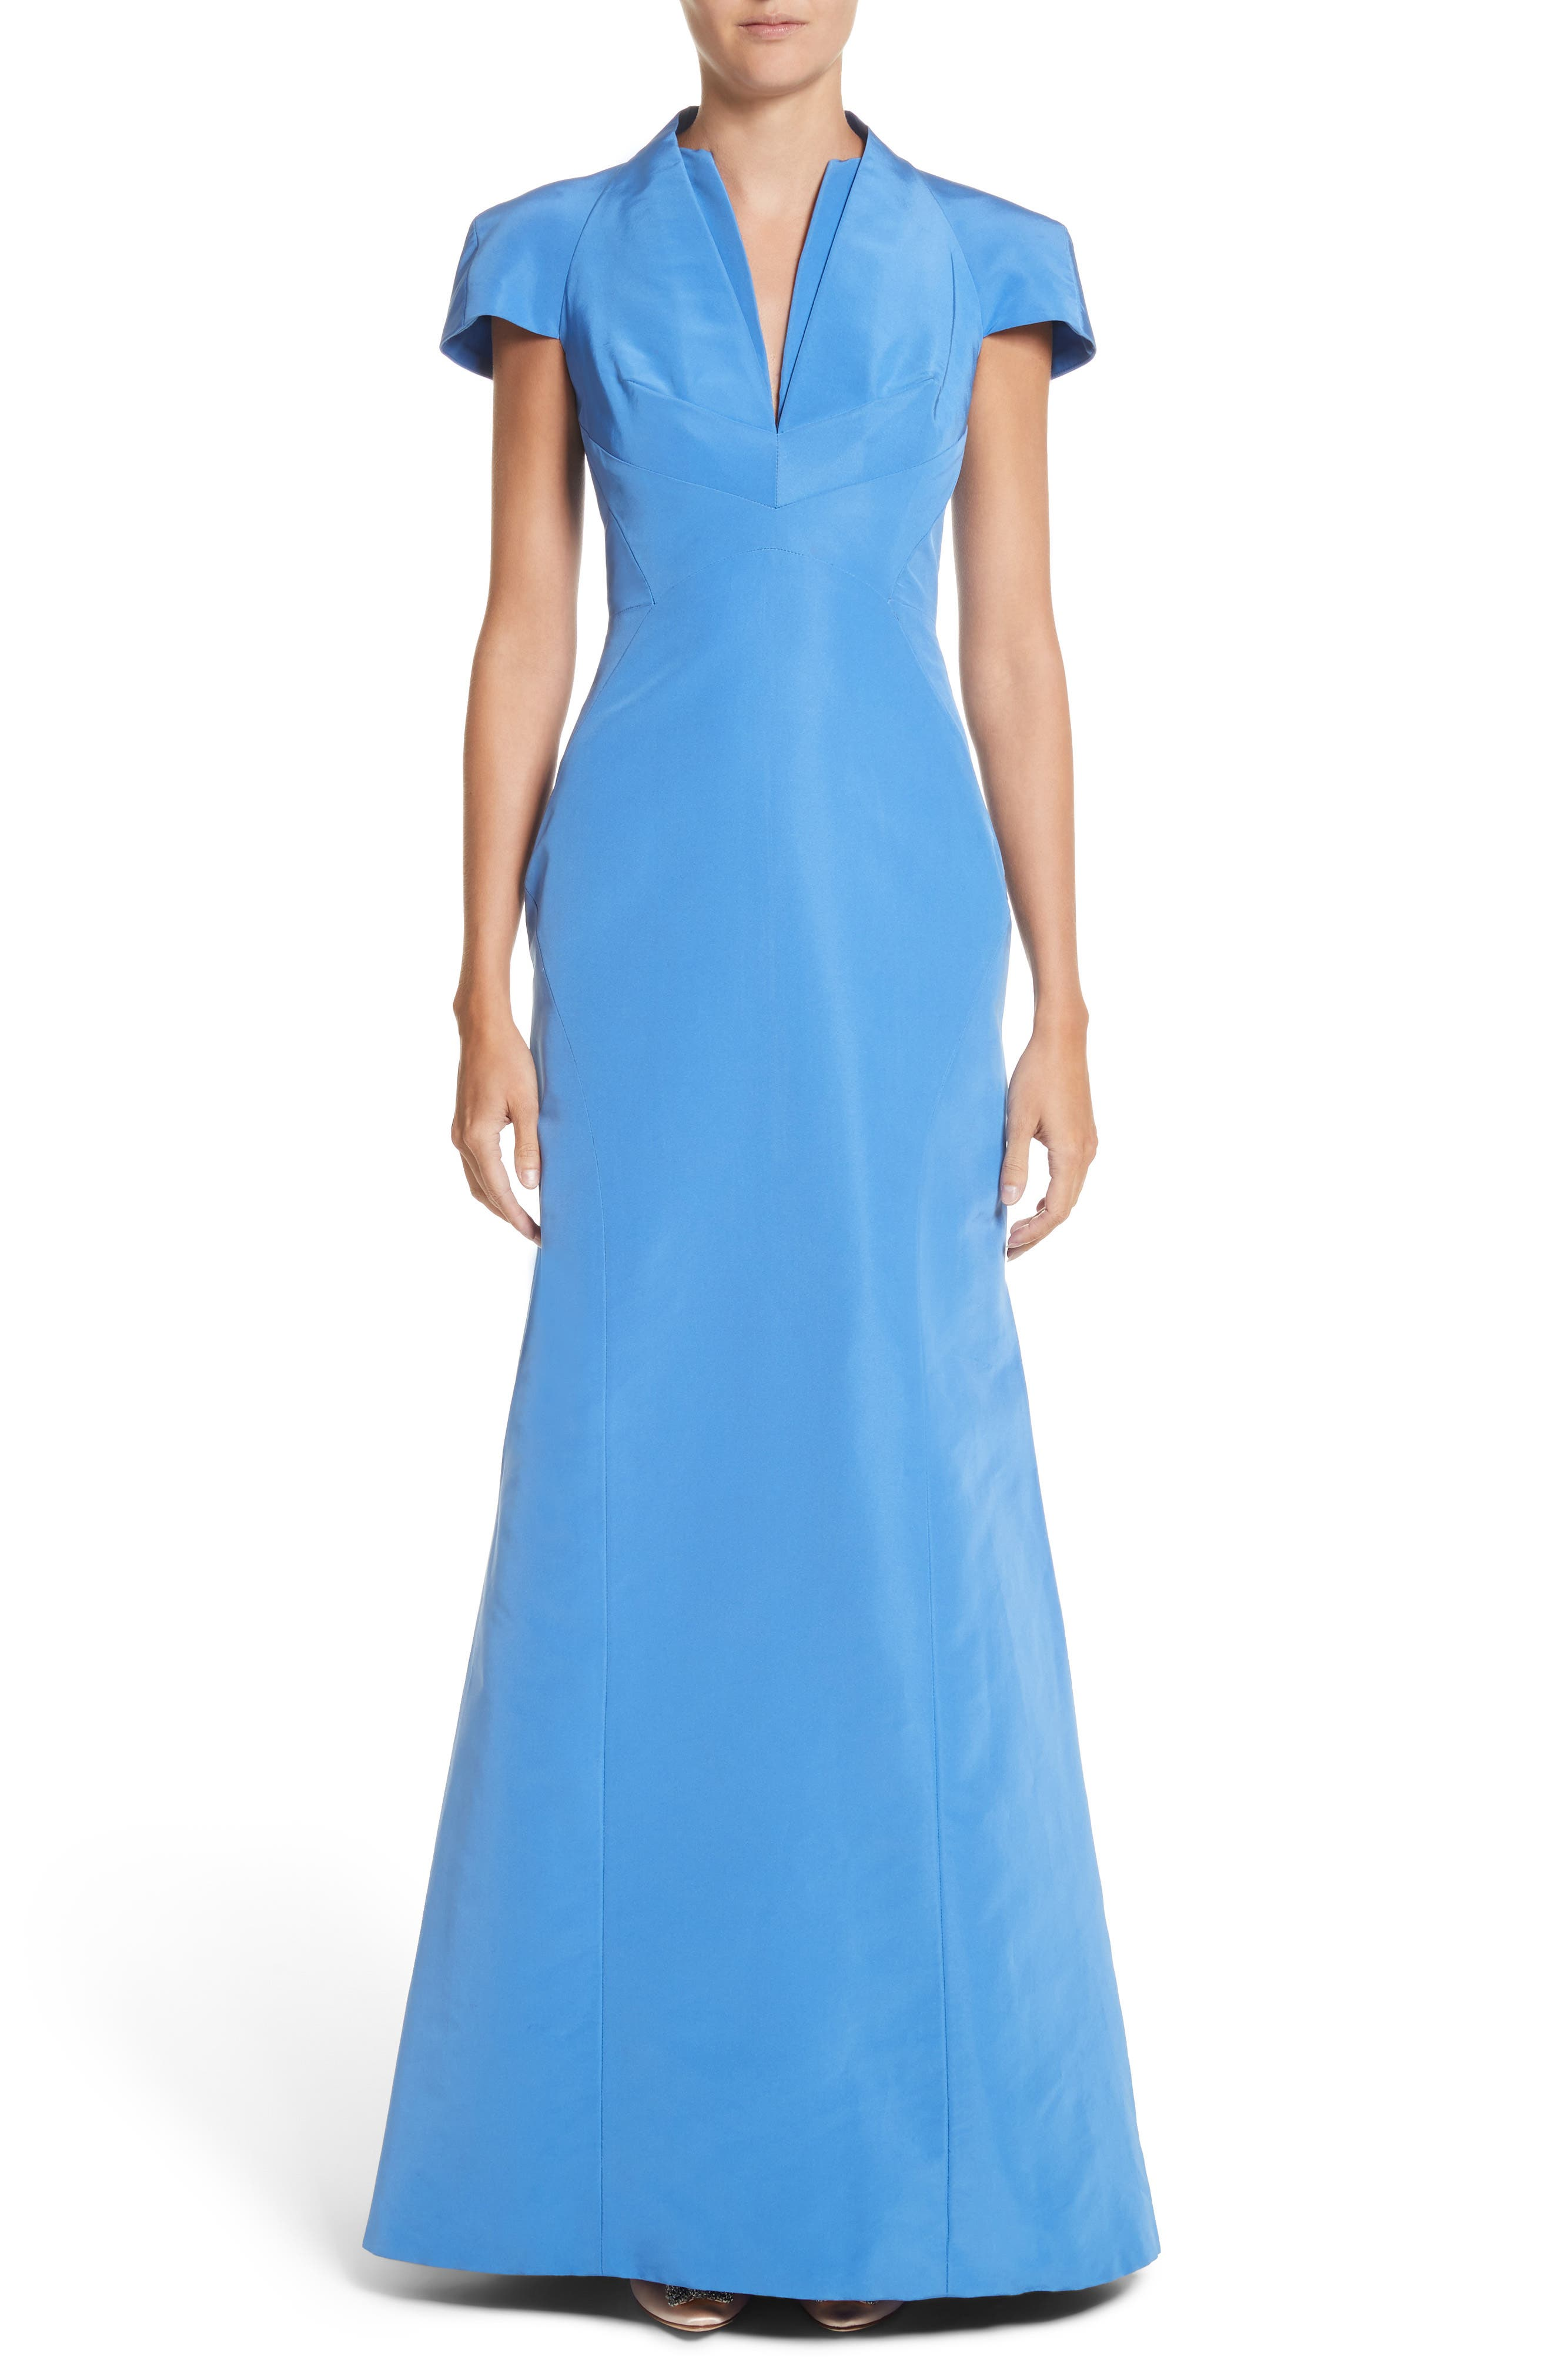 Alternate Image 1 Selected - Zac Posen Silk Faille Short Sleeve Mermaid Gown